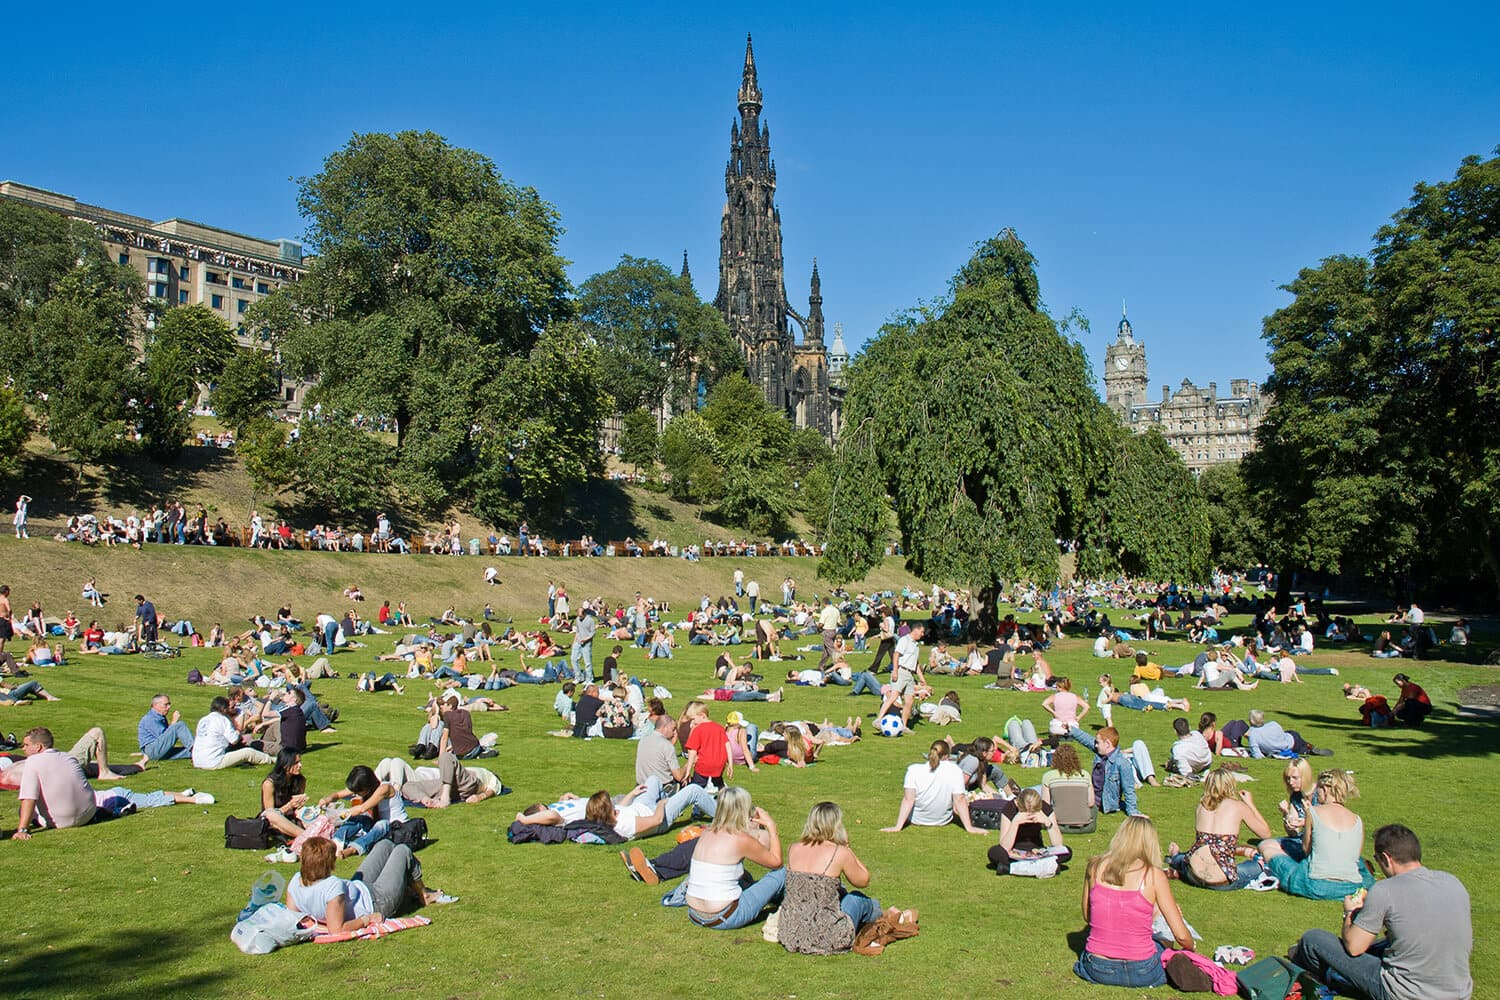 Edinburgh has been ranked second in the world for quality of life!